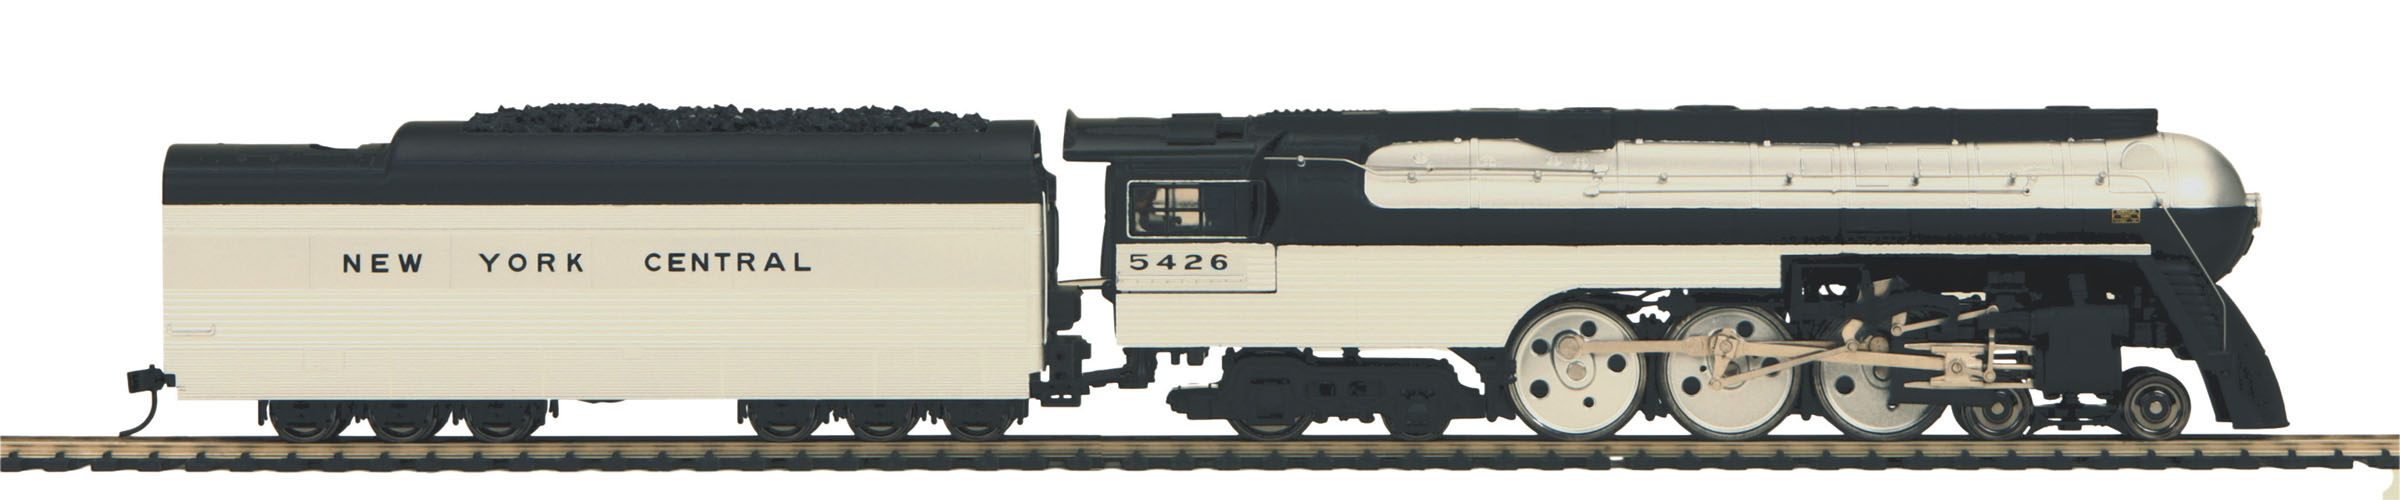 80-3230-1 | MTH ELECTRIC TRAINS